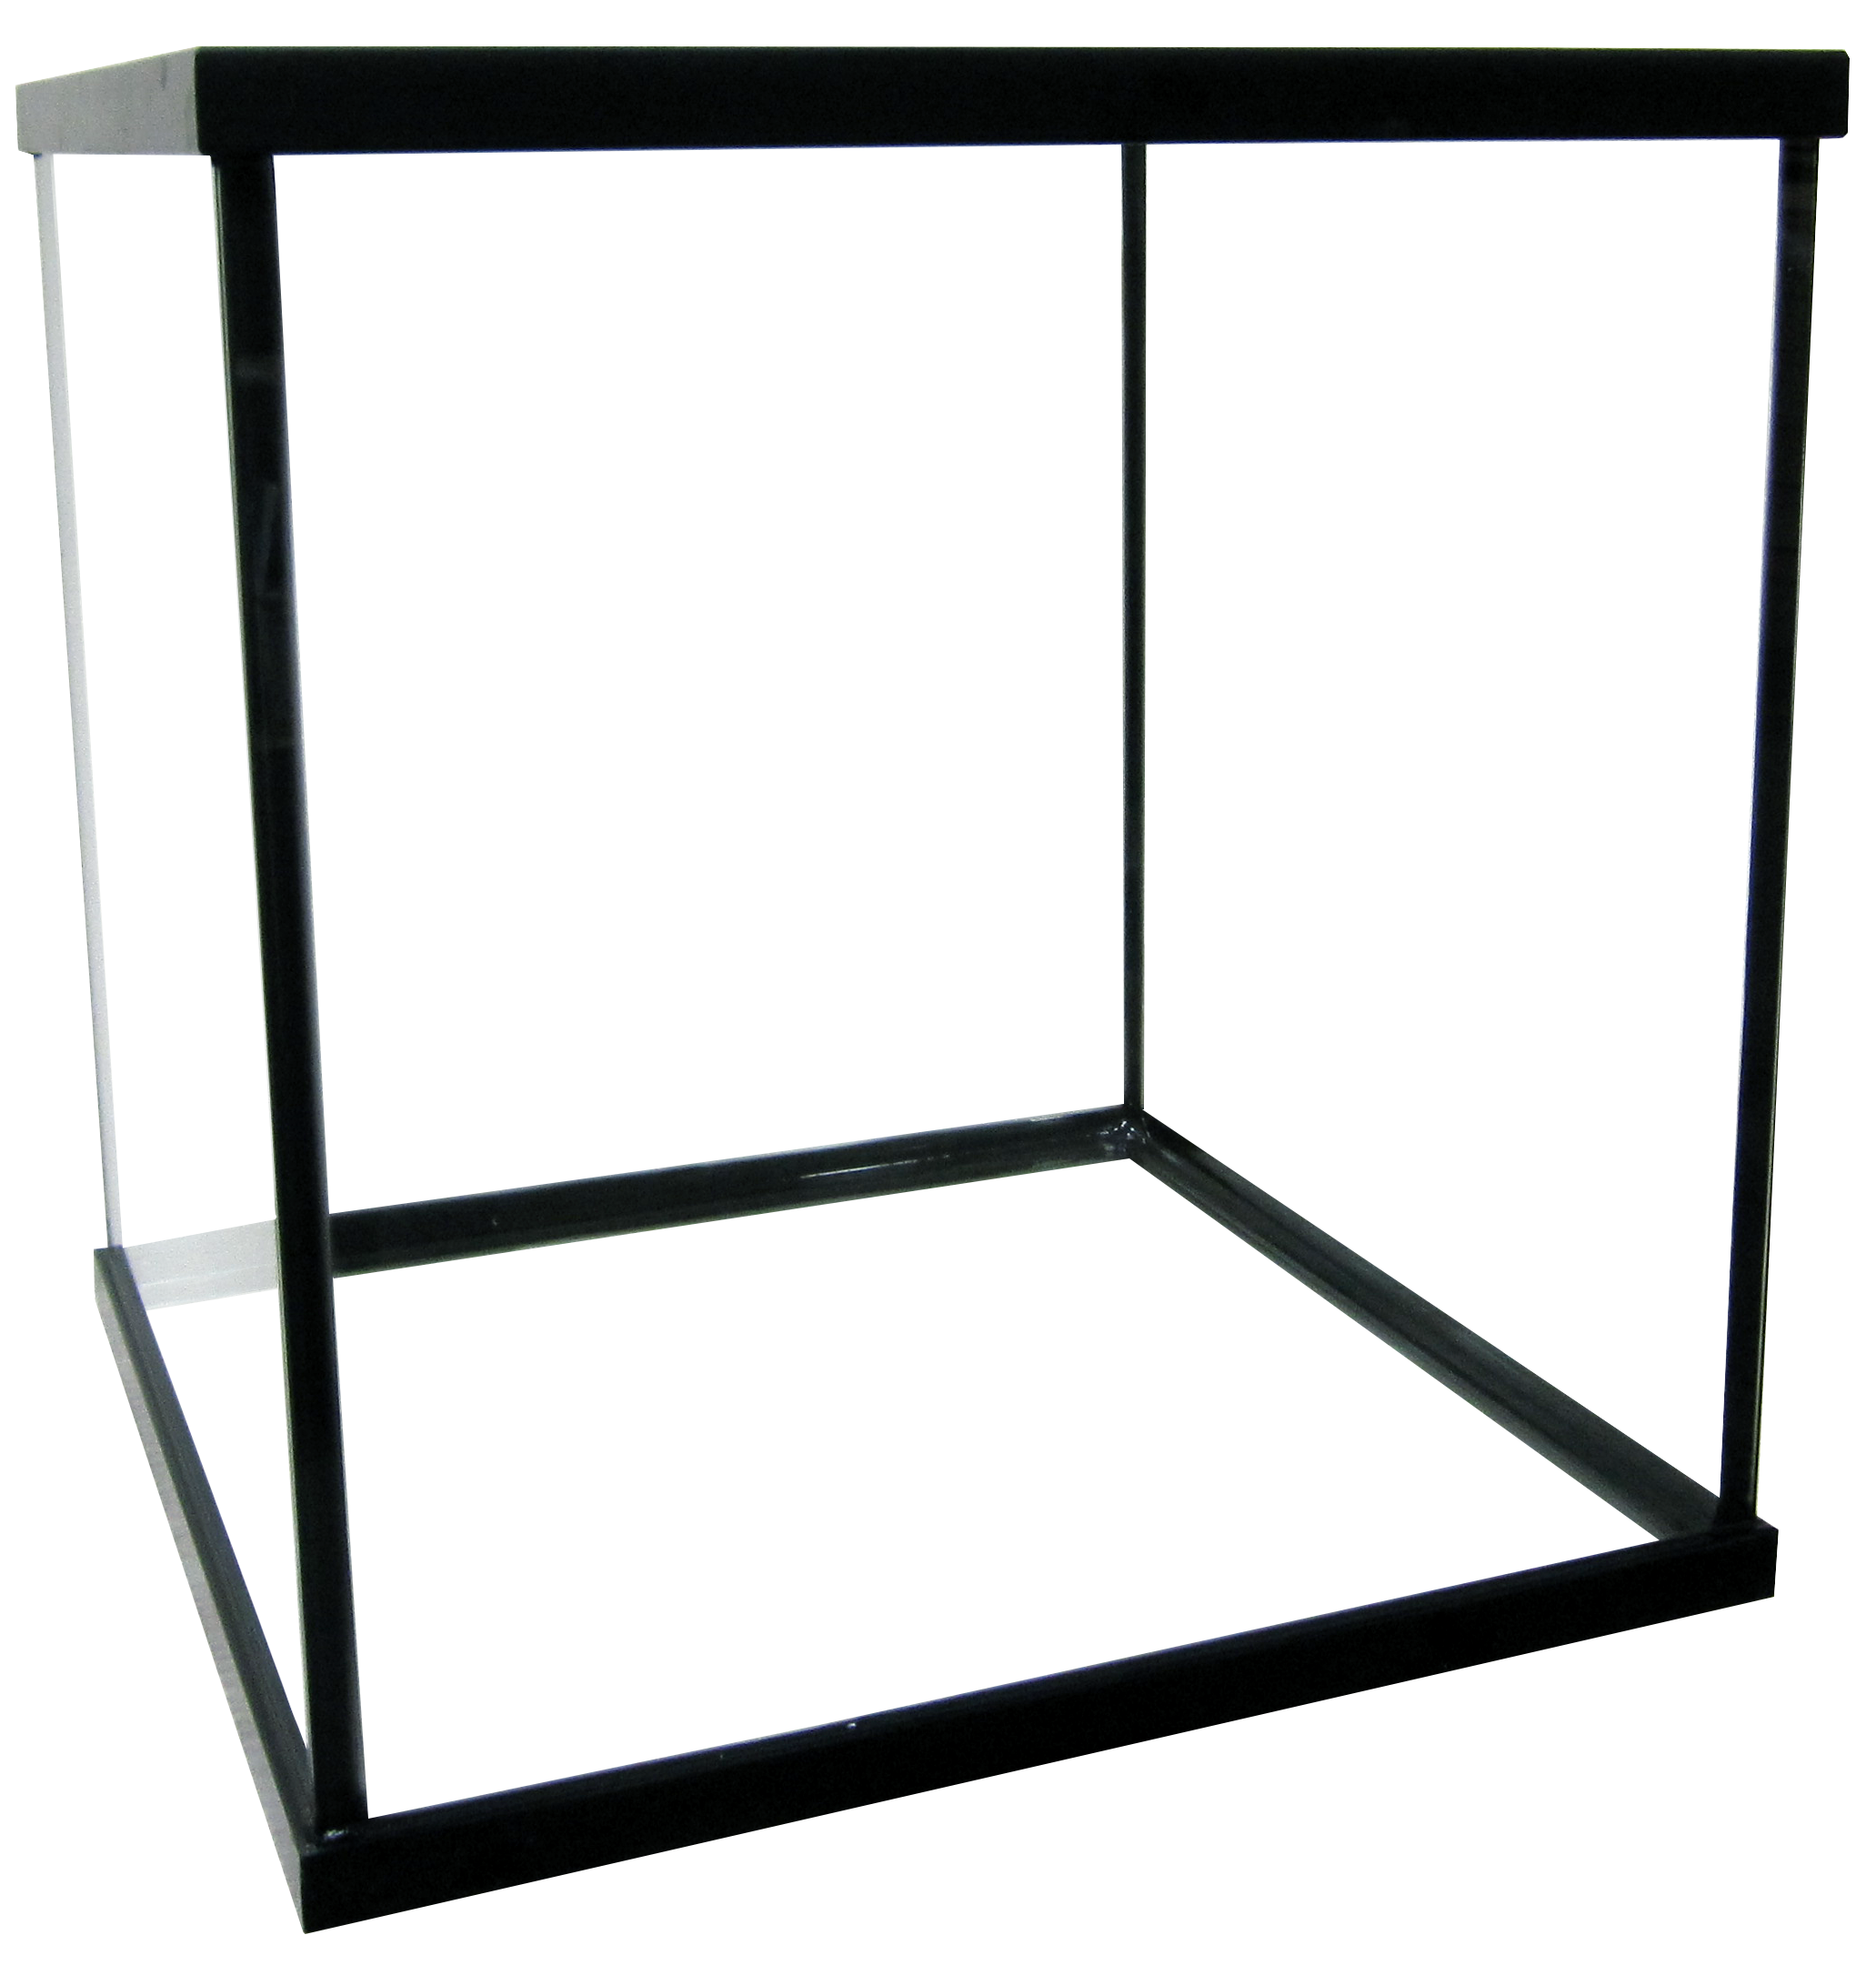 "35 Cube Aquarium - 20x20x20 ""  SKU: AM11035  UPC#: 7-49729-11035-4  Product Dimension: 20.5""x20.5""x21.25""  Capacity: Approximately 35 gallons  Weight: 28.1 lbs"